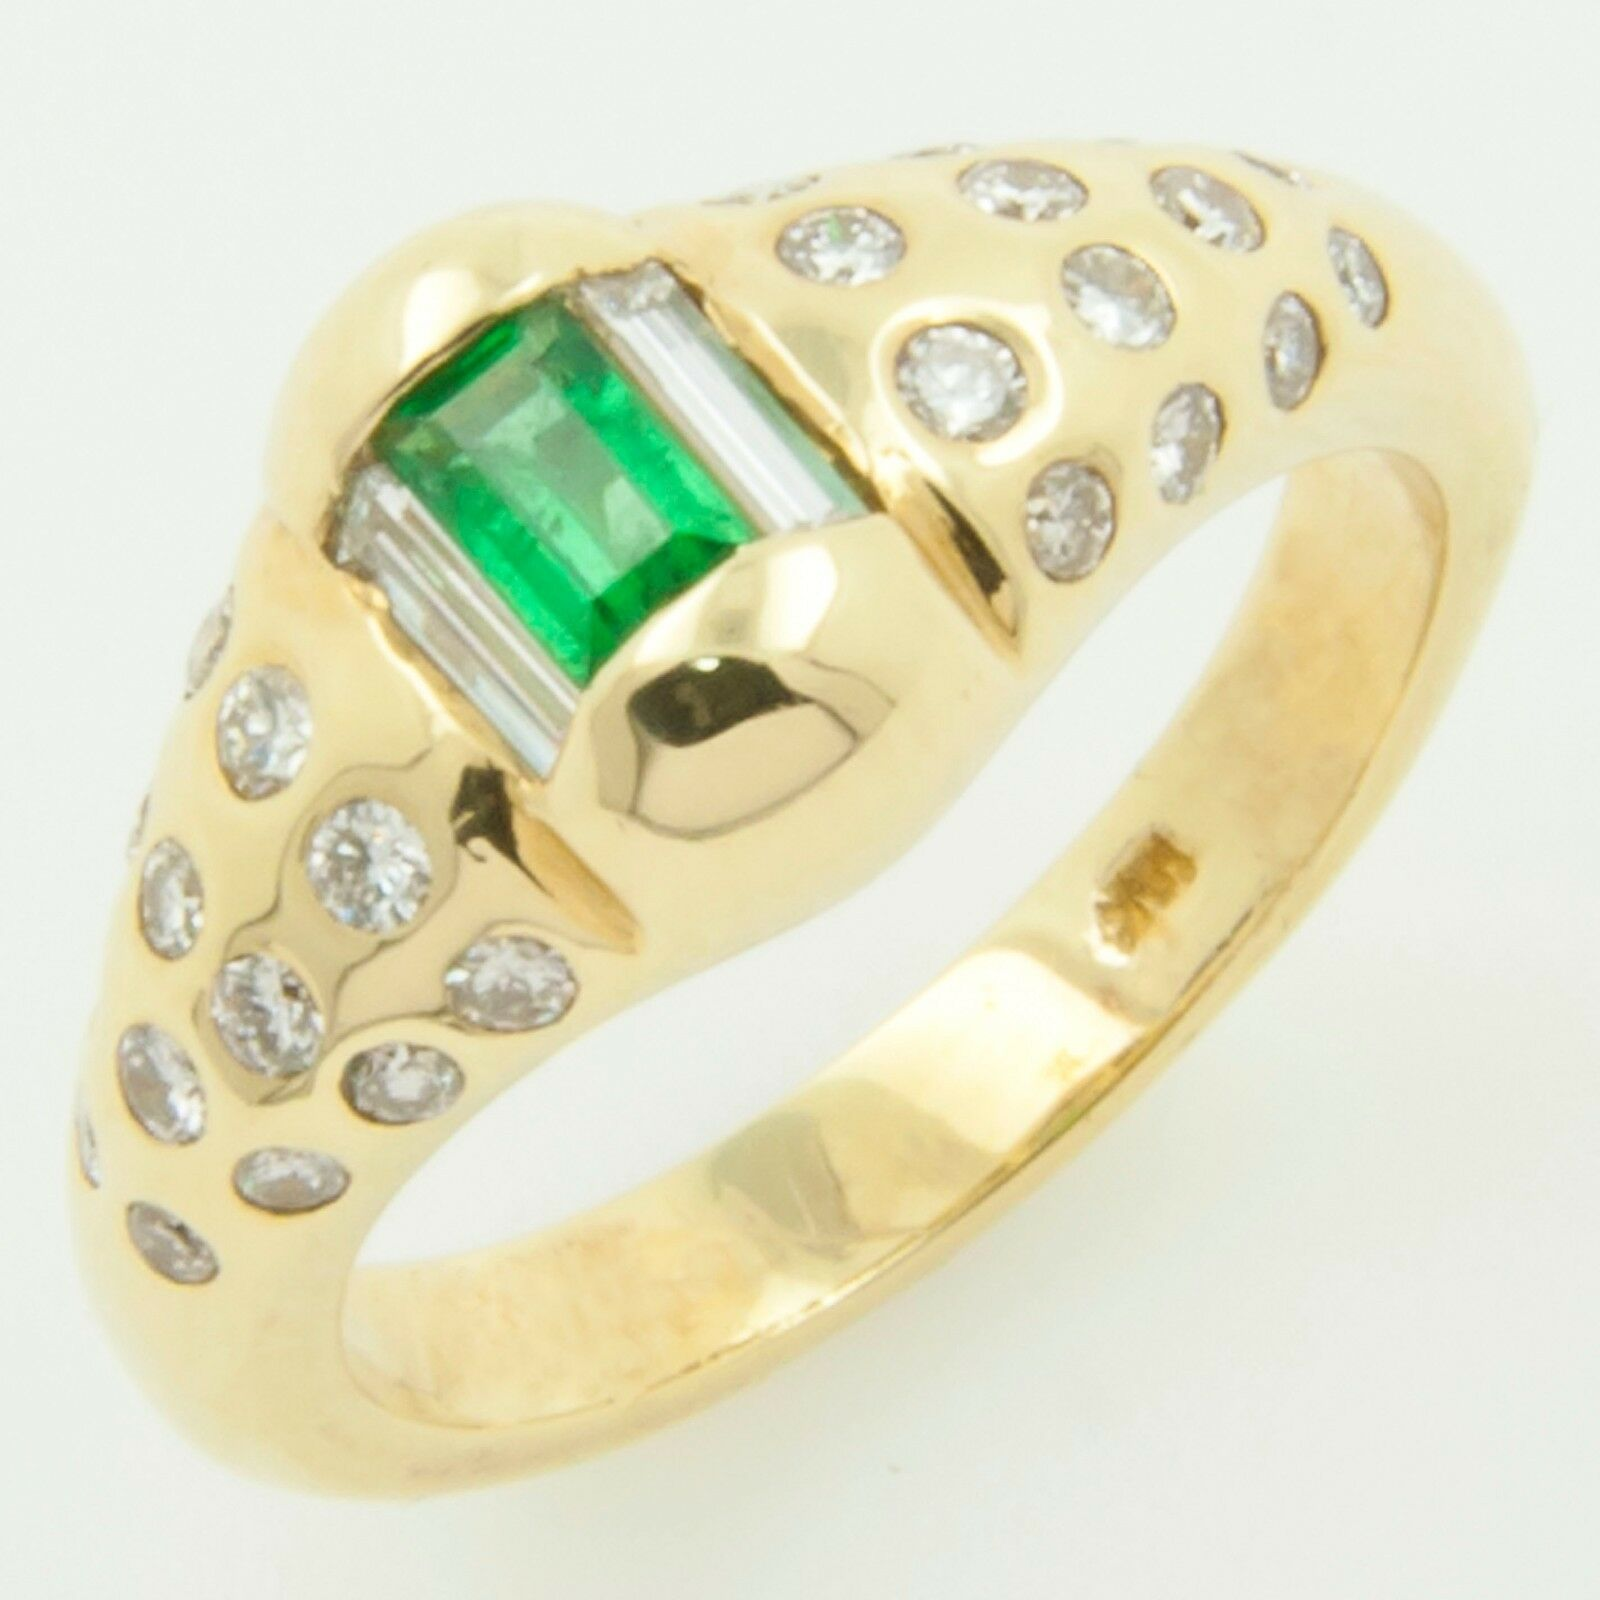 Natural Green Emerald & VVS Diamond Ring 18k solid yellow gold US Size 7.25